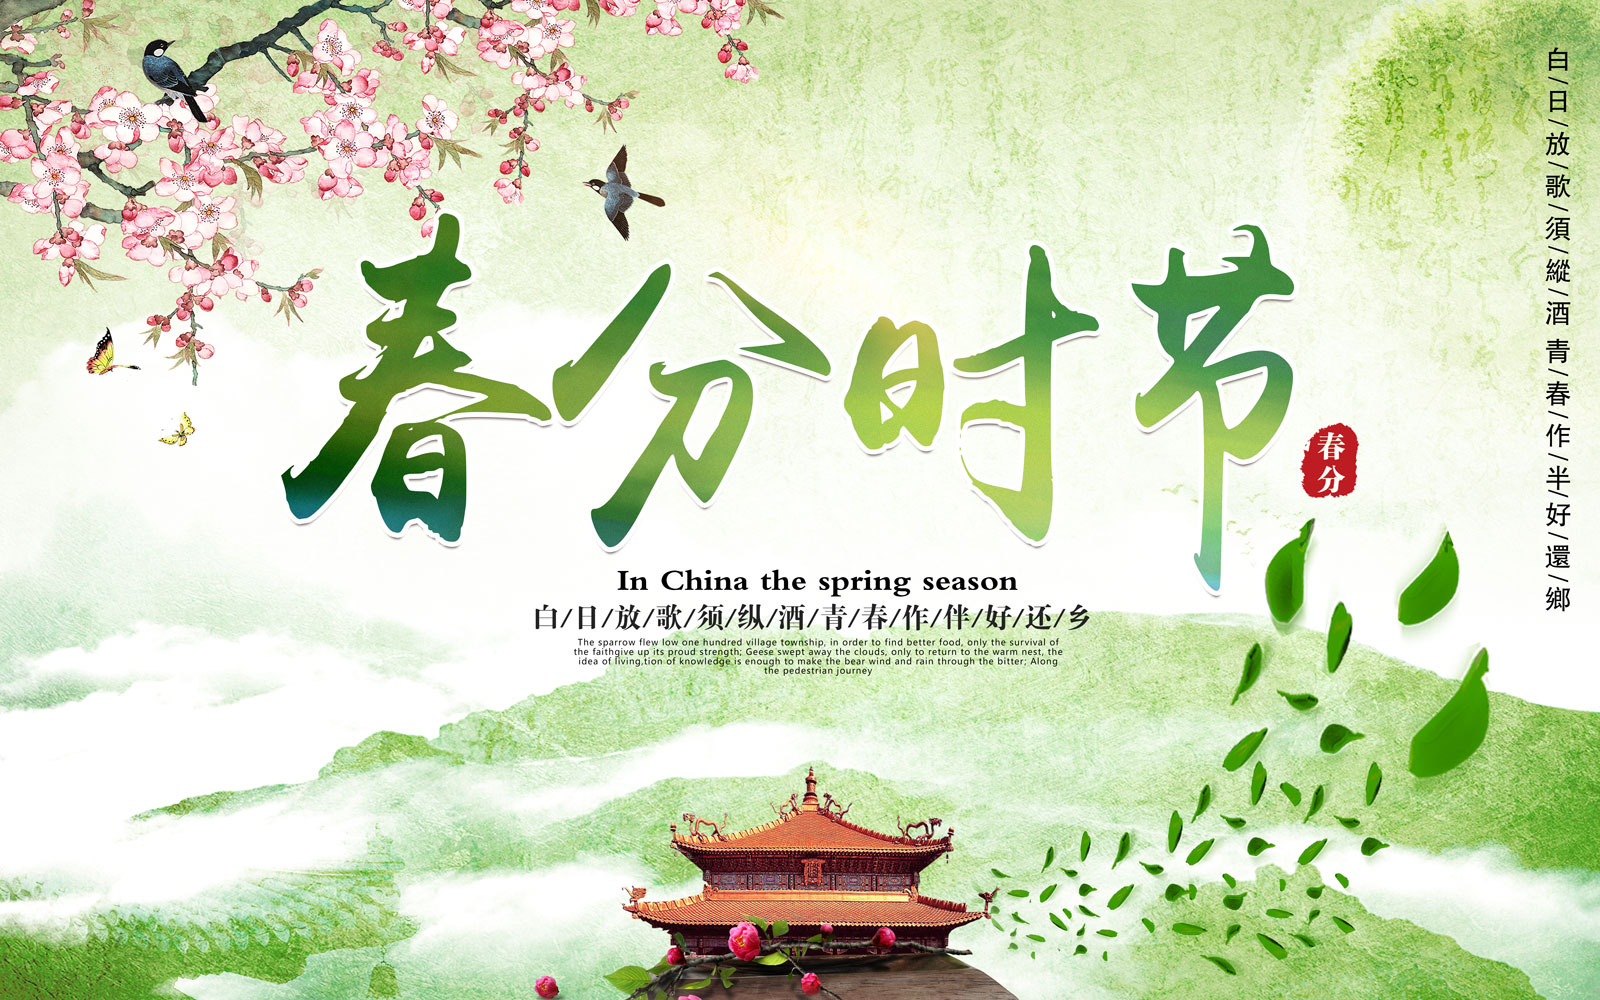 The spring of China is coming -  China PSD File Free Download